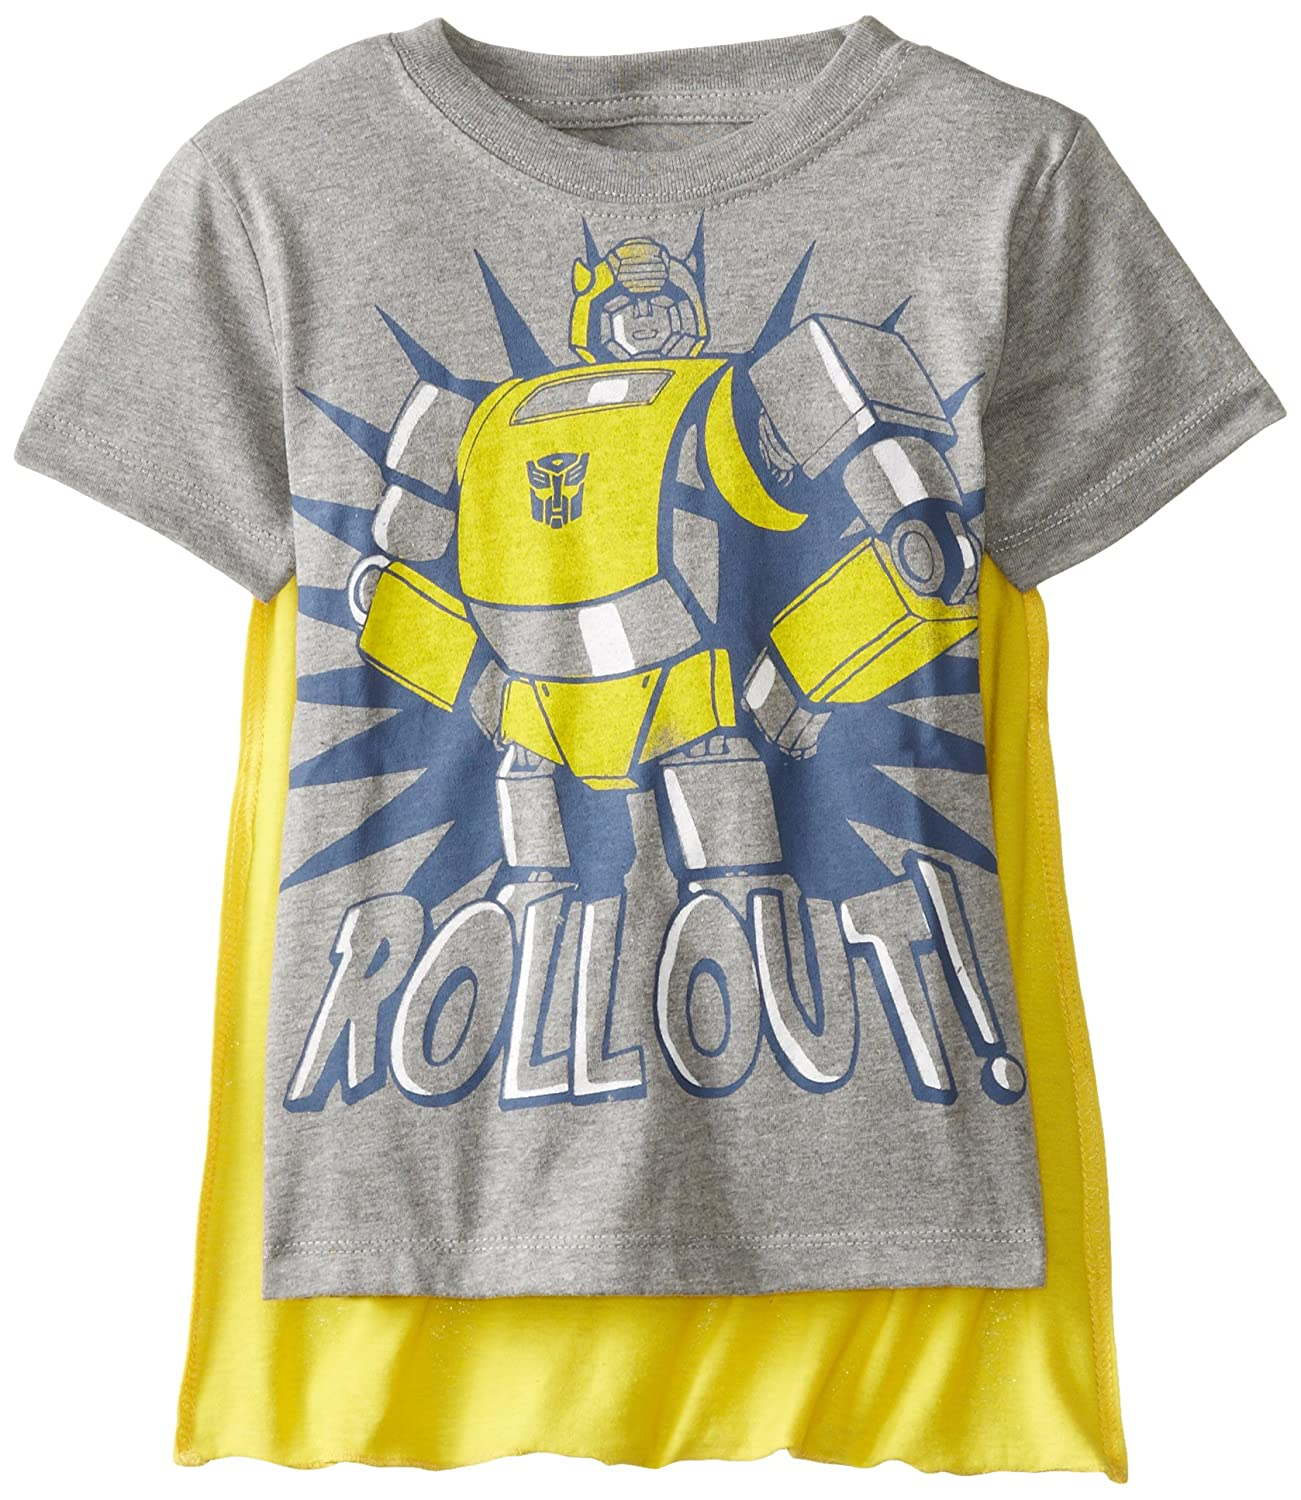 e7ca9846ae095 Transformers Boys' Bumblebee Roll Out T-Shirt with Cape